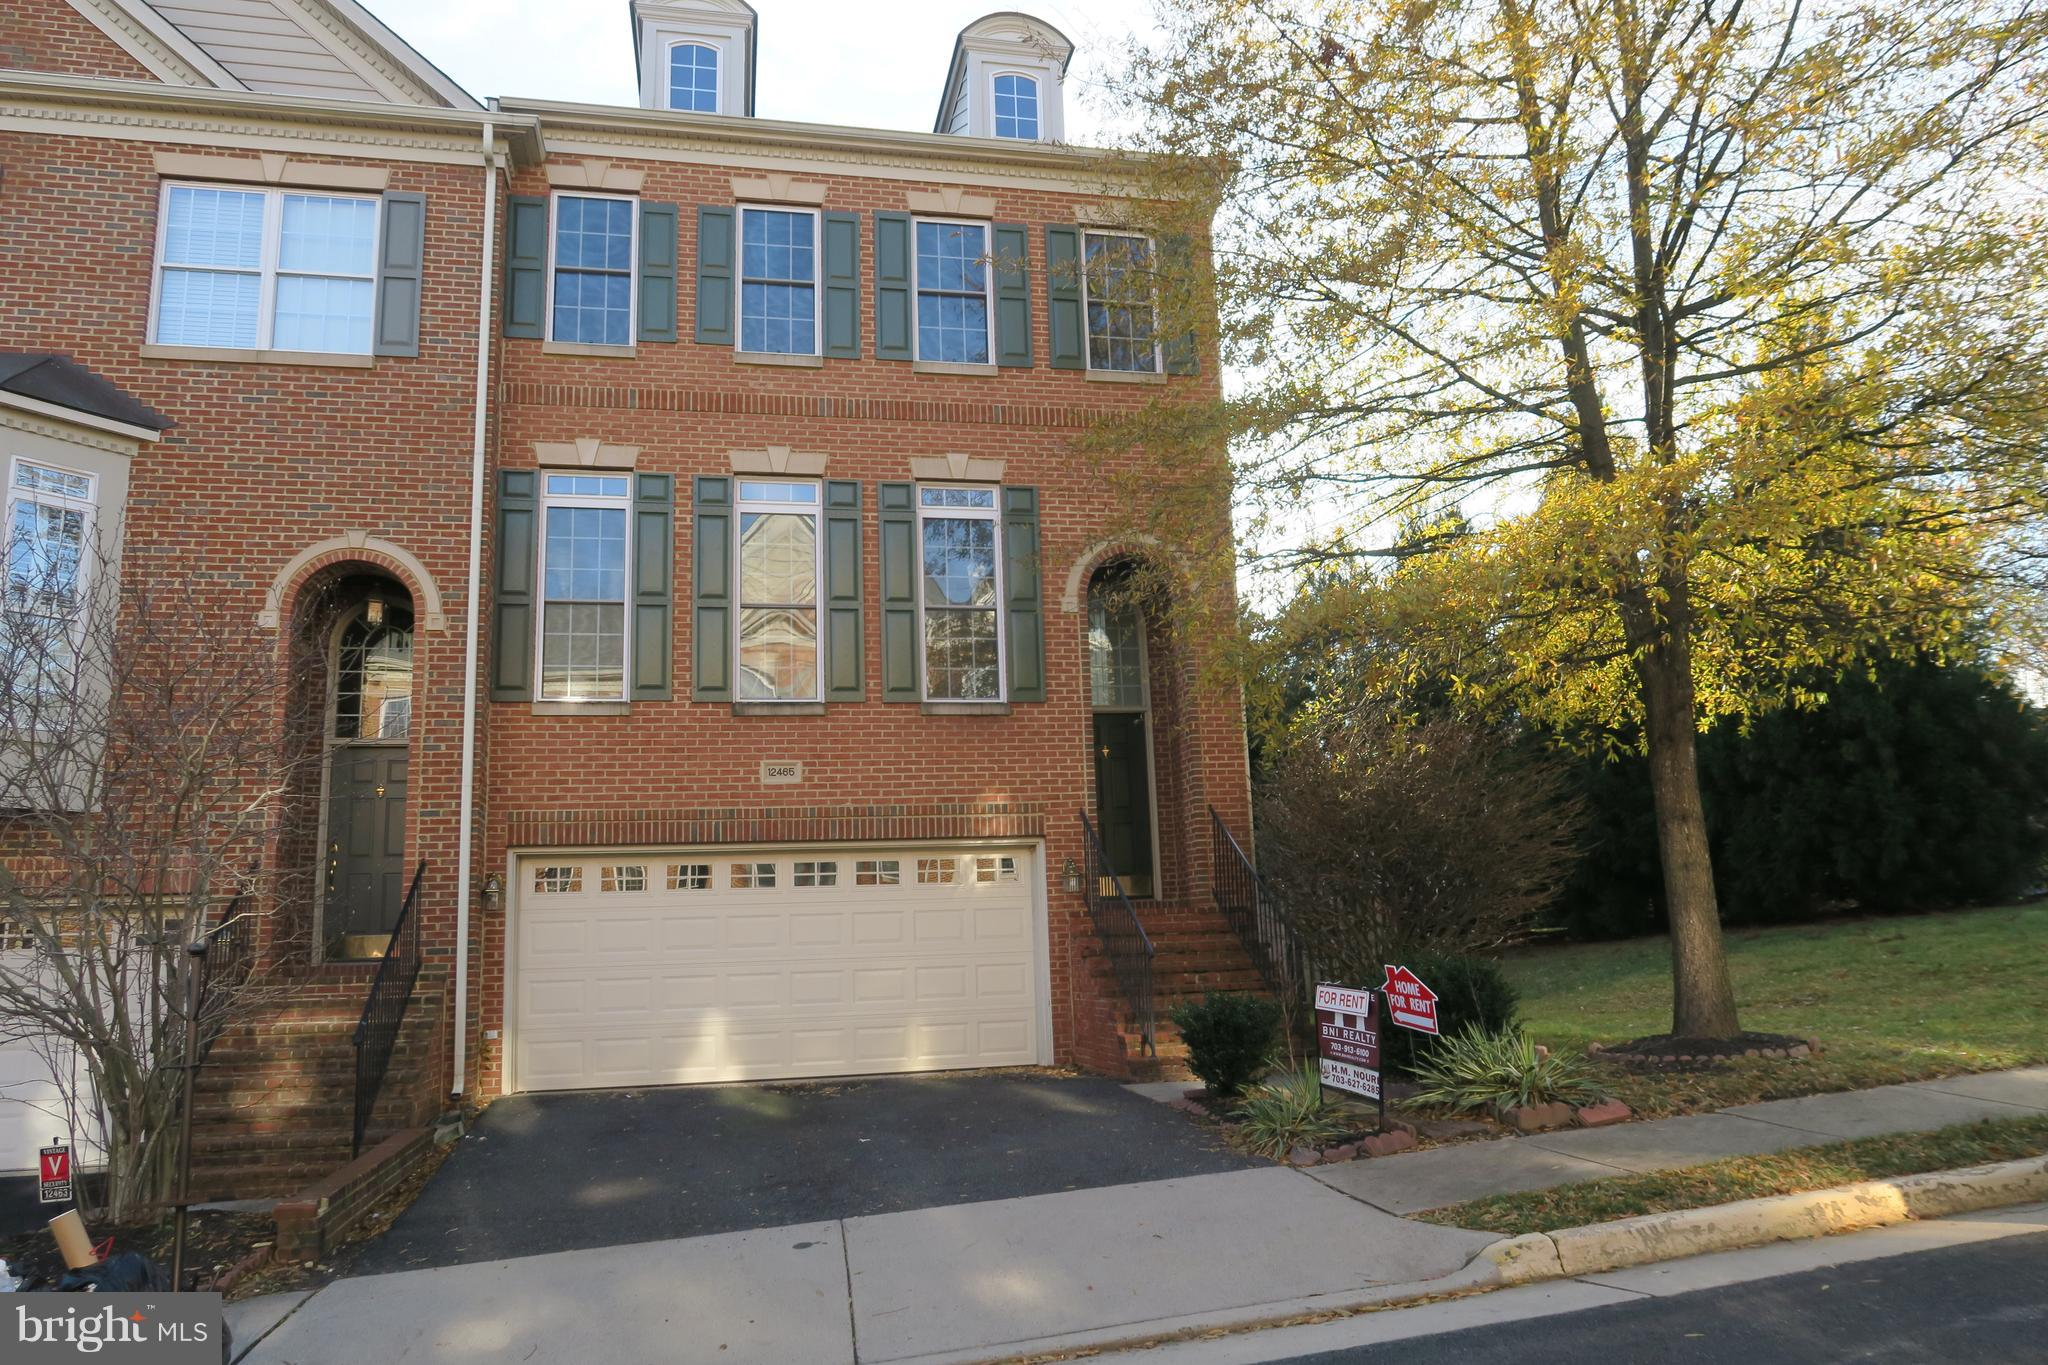 Large, beautiful end unit townhouse. 4BR/3.5BA. Hardwood through out main level. Corian counter with gas cooking, center island, 42' cabinets. Gas fireplace. Huge deck with stairs to patio and garden. Lux MBR suite with cathedral ceiling/walk in closet/spectacular bath. Finished walk out basement with bedroom and full bath. Close to 66, Rd 50, Fairfax county pkwy, Fair Oaks Mall.